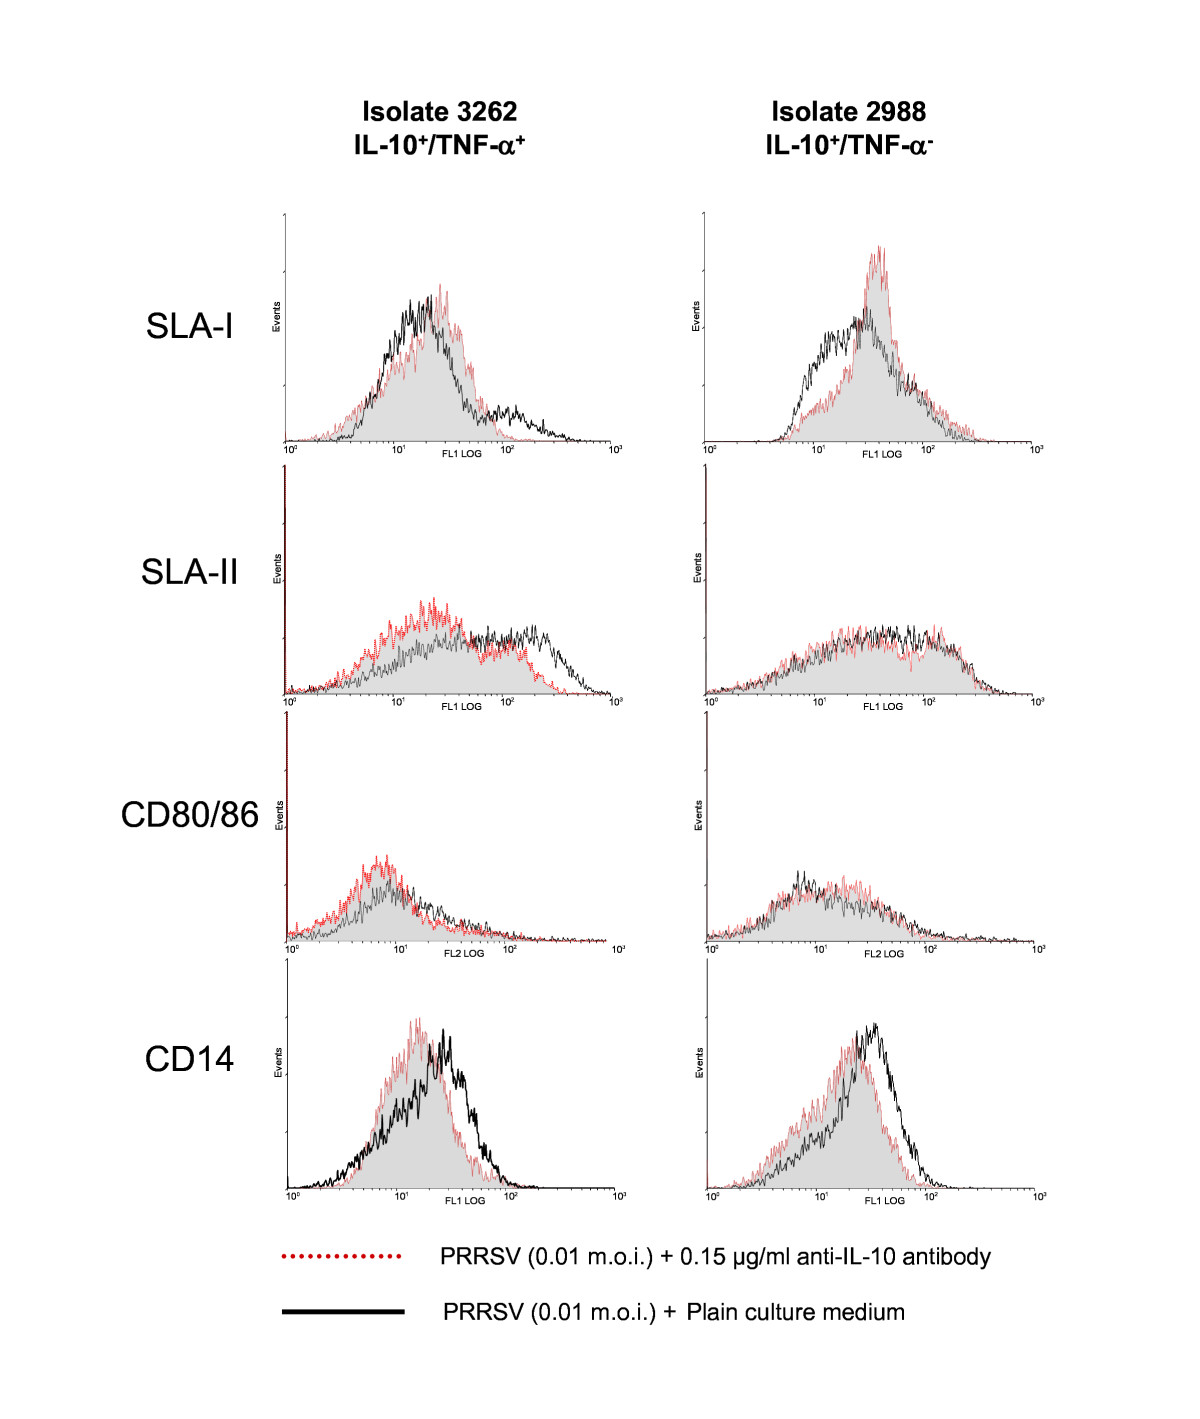 https://static-content.springer.com/image/art%3A10.1186%2F1297-9716-42-9/MediaObjects/13567_2010_Article_9_Fig3_HTML.jpg